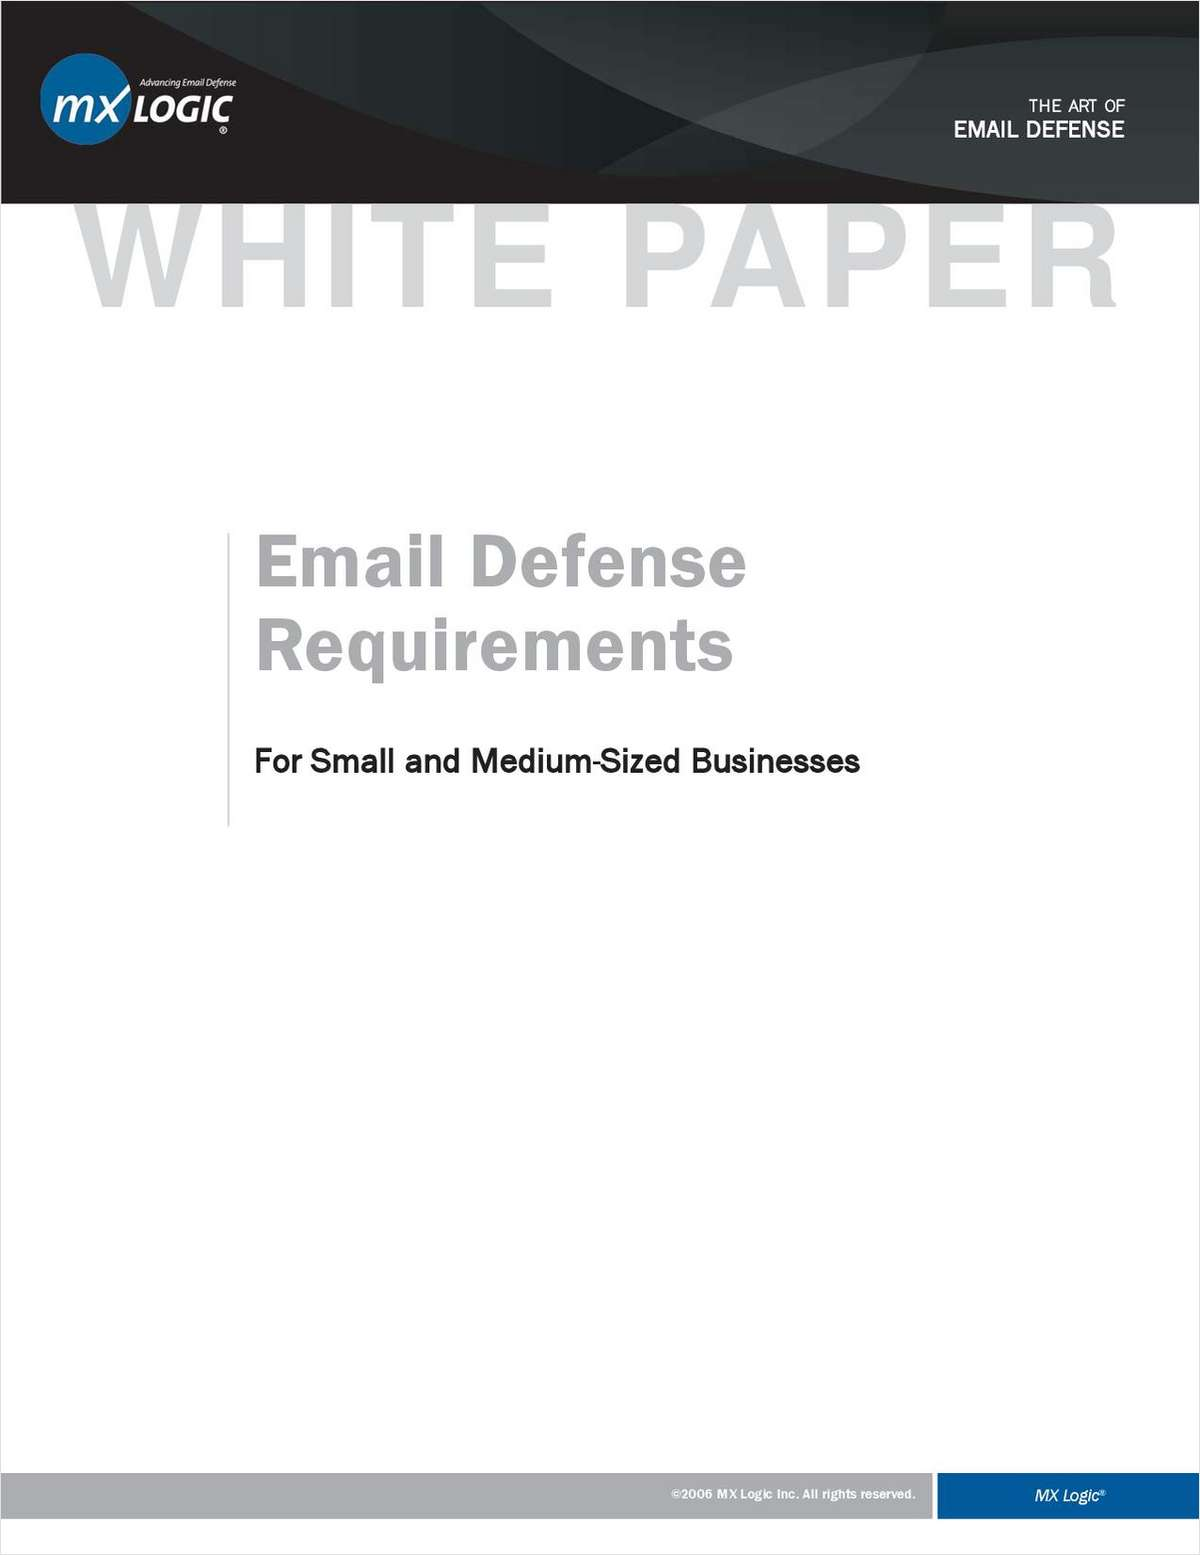 Email Defense Requirements for Small and Medium-Sized Businesses